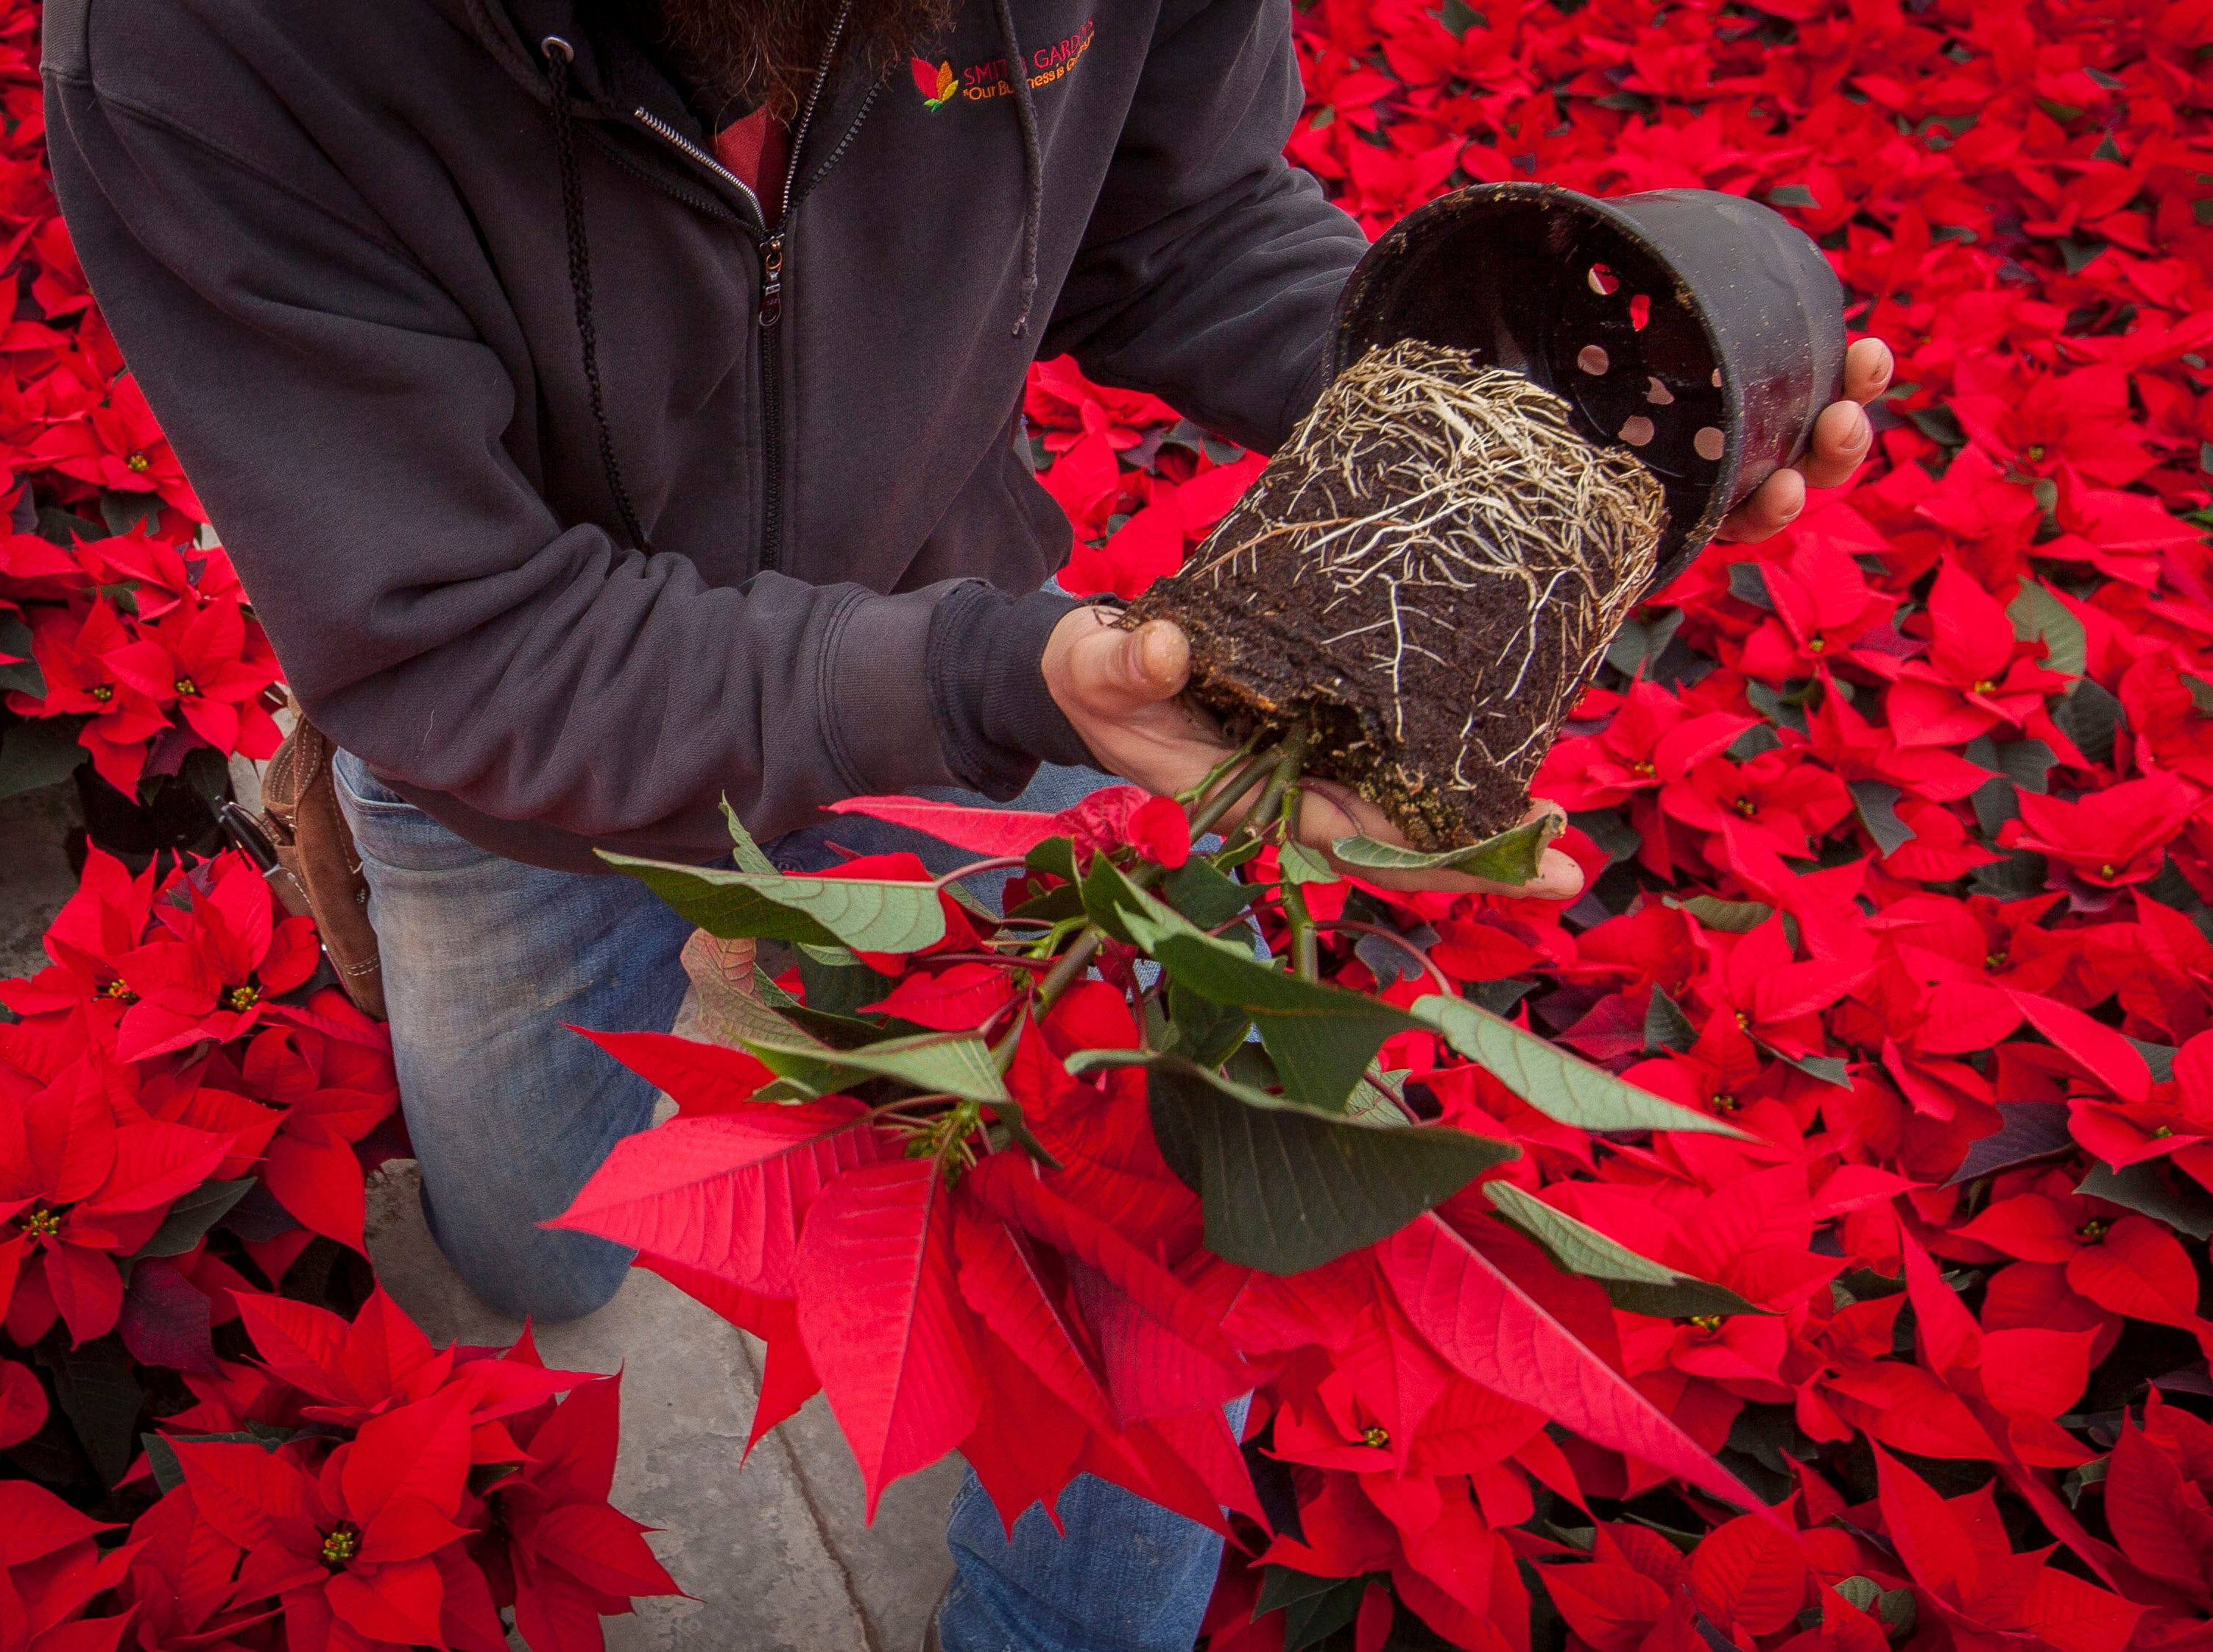 John Cunliffe, assistant head grower at Smith Gardens in Aurora, Oregon, inspects a 1.5 quart red poinsettia plant for root quality Friday November 30, 2018. Cunliffe is inspecting the plants before they are packaged for one of the last shipments of the year in early December. The plants go to local big box stores.